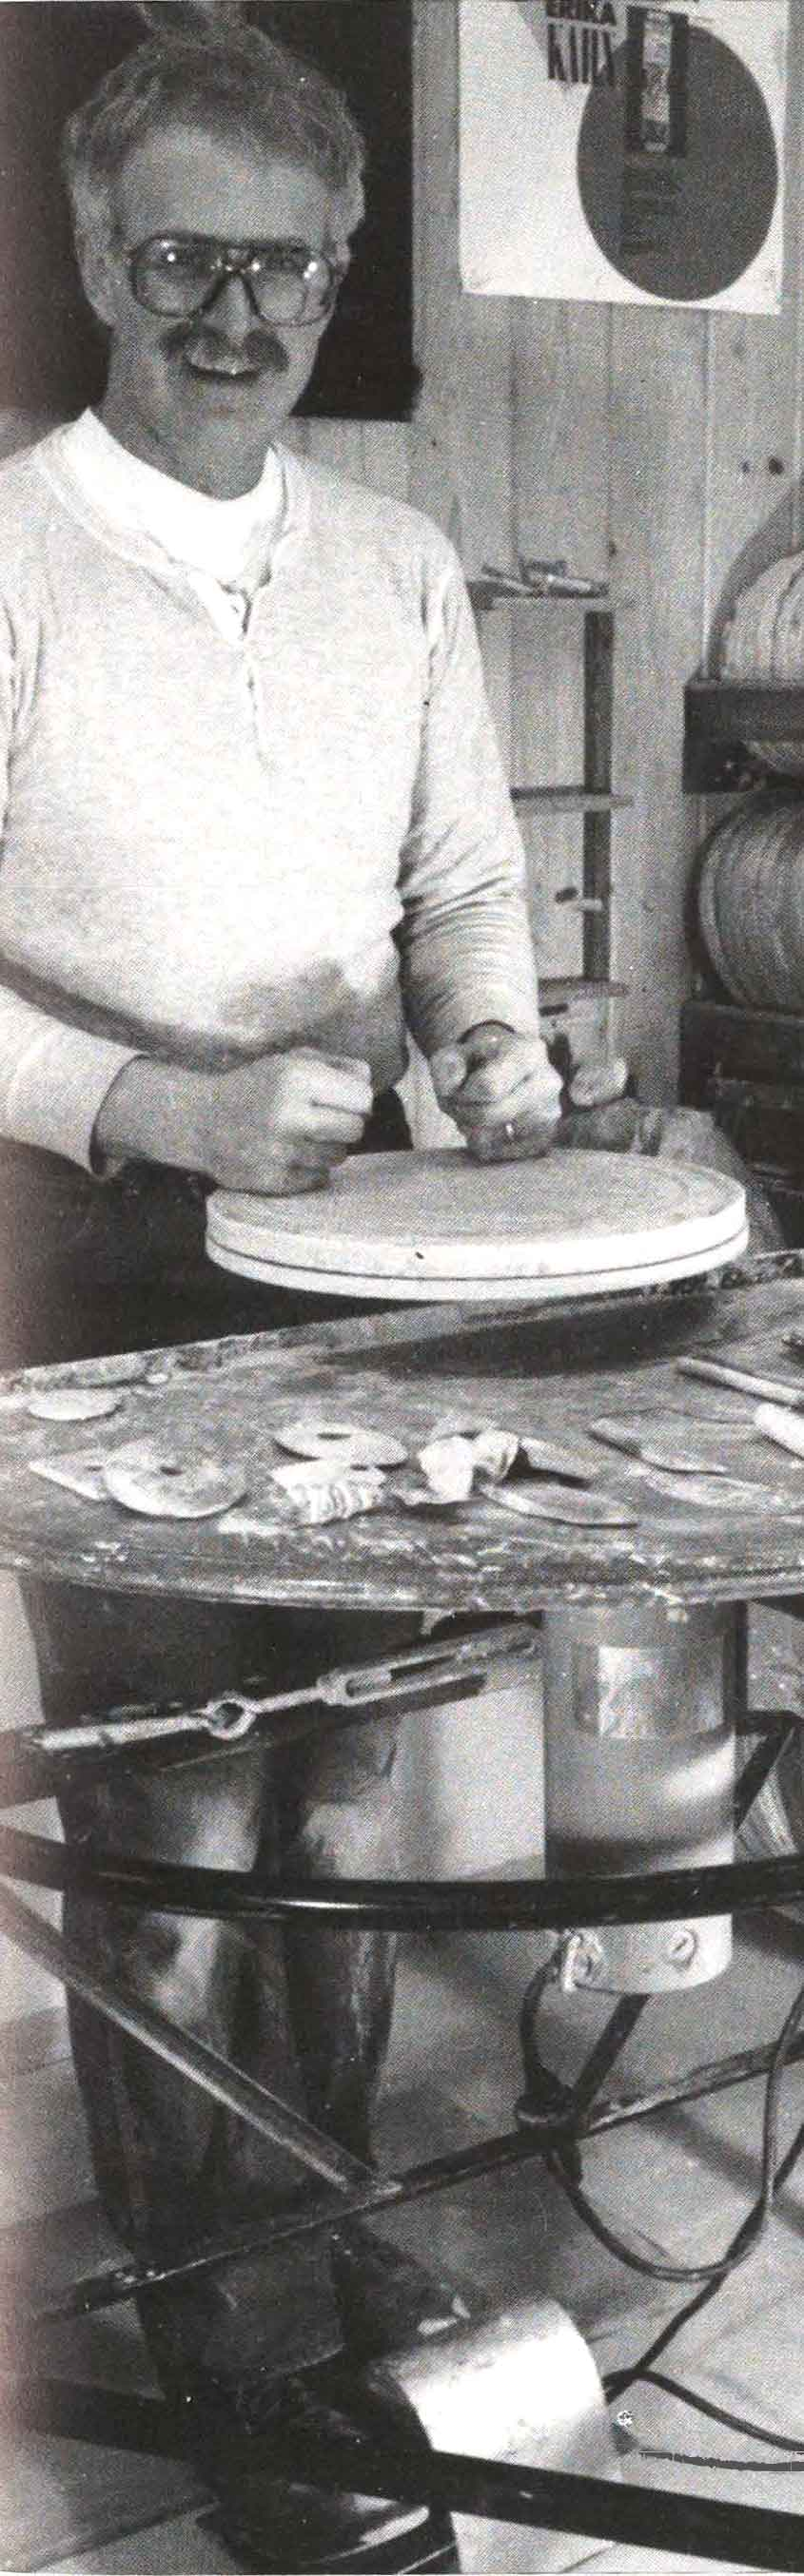 John Glick at his potter's wheel, raised to enable throwing pots standing, rather than sitting, for back health.